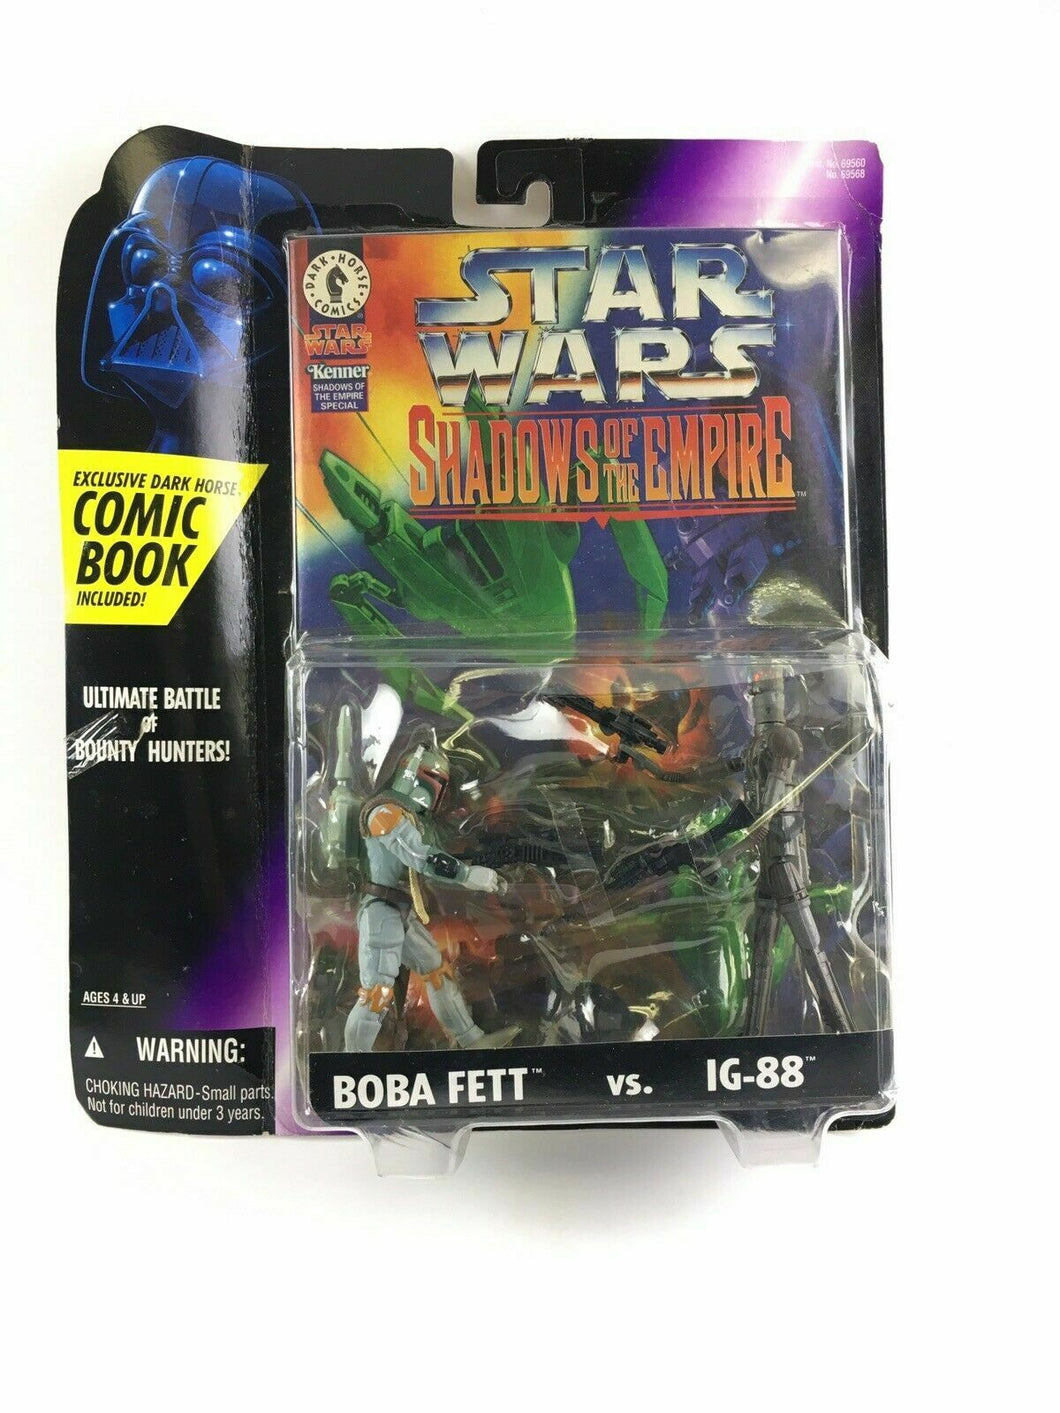 Star Wars Shadows of the Empire Boba Fett Vs. Ig 88 W/ COMIC BOOK 4623